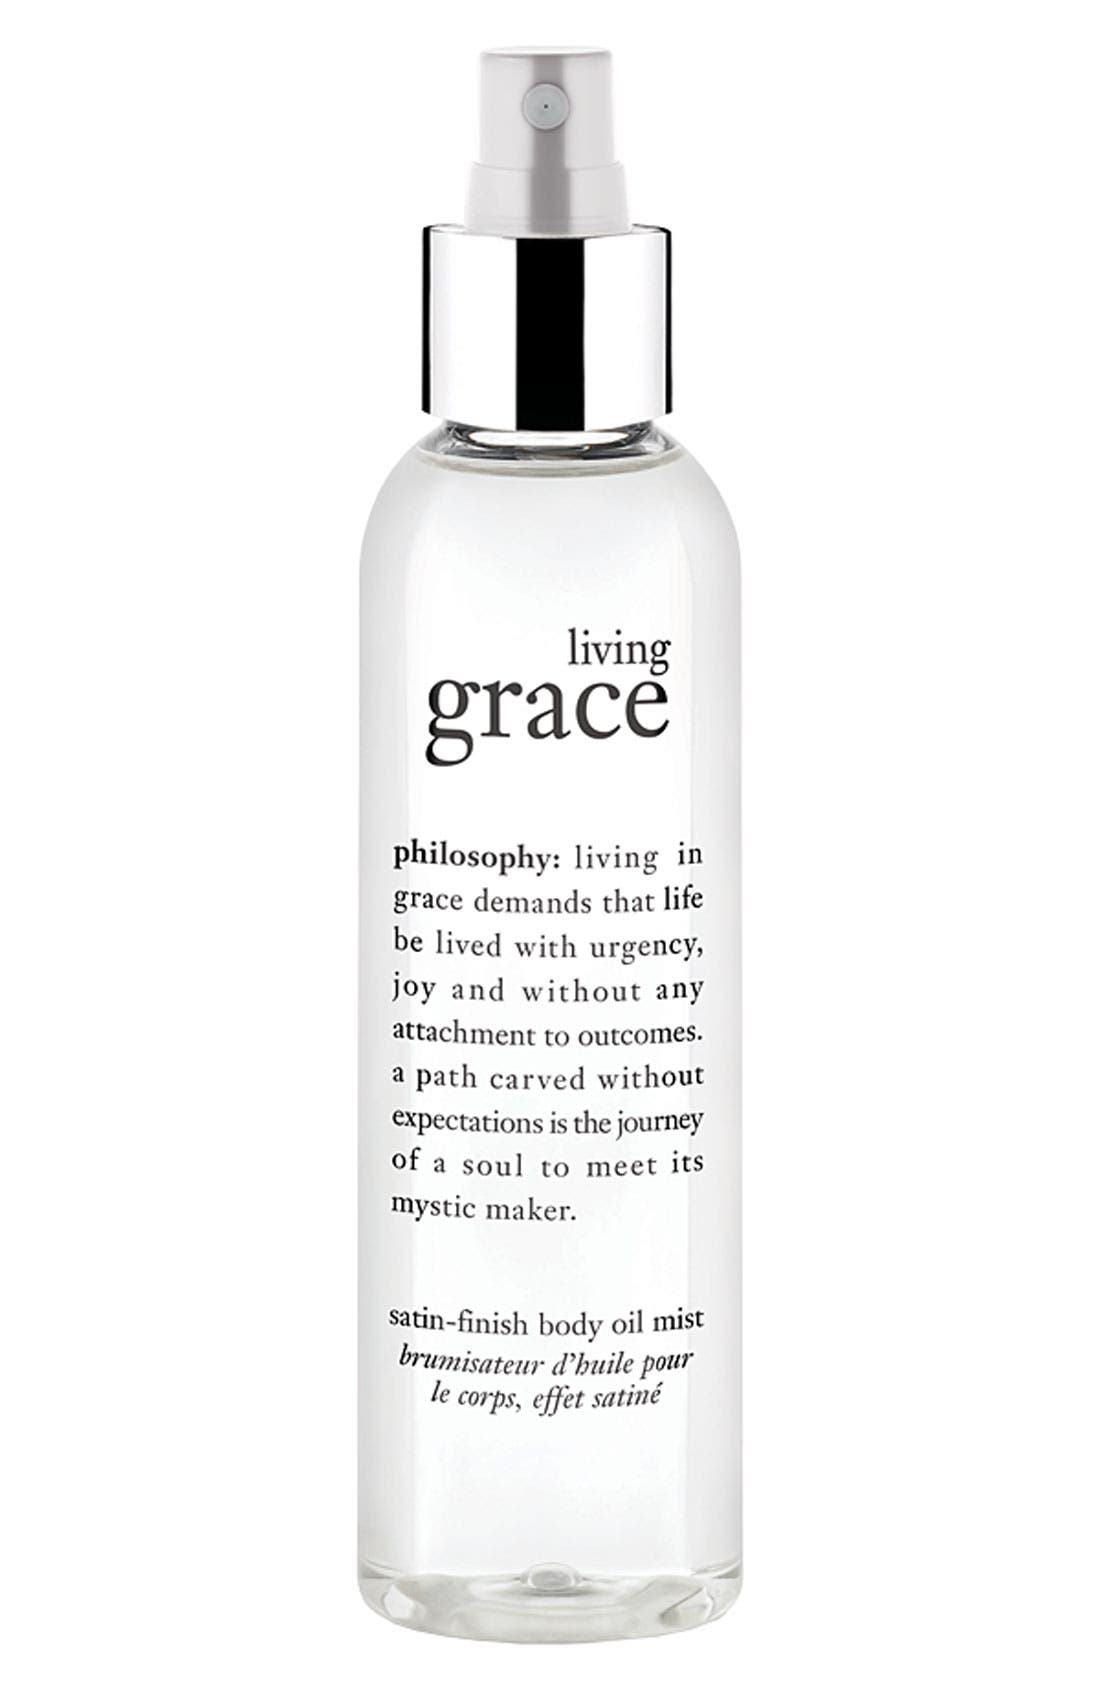 philosophy 'living grace' satin finish body oil mist